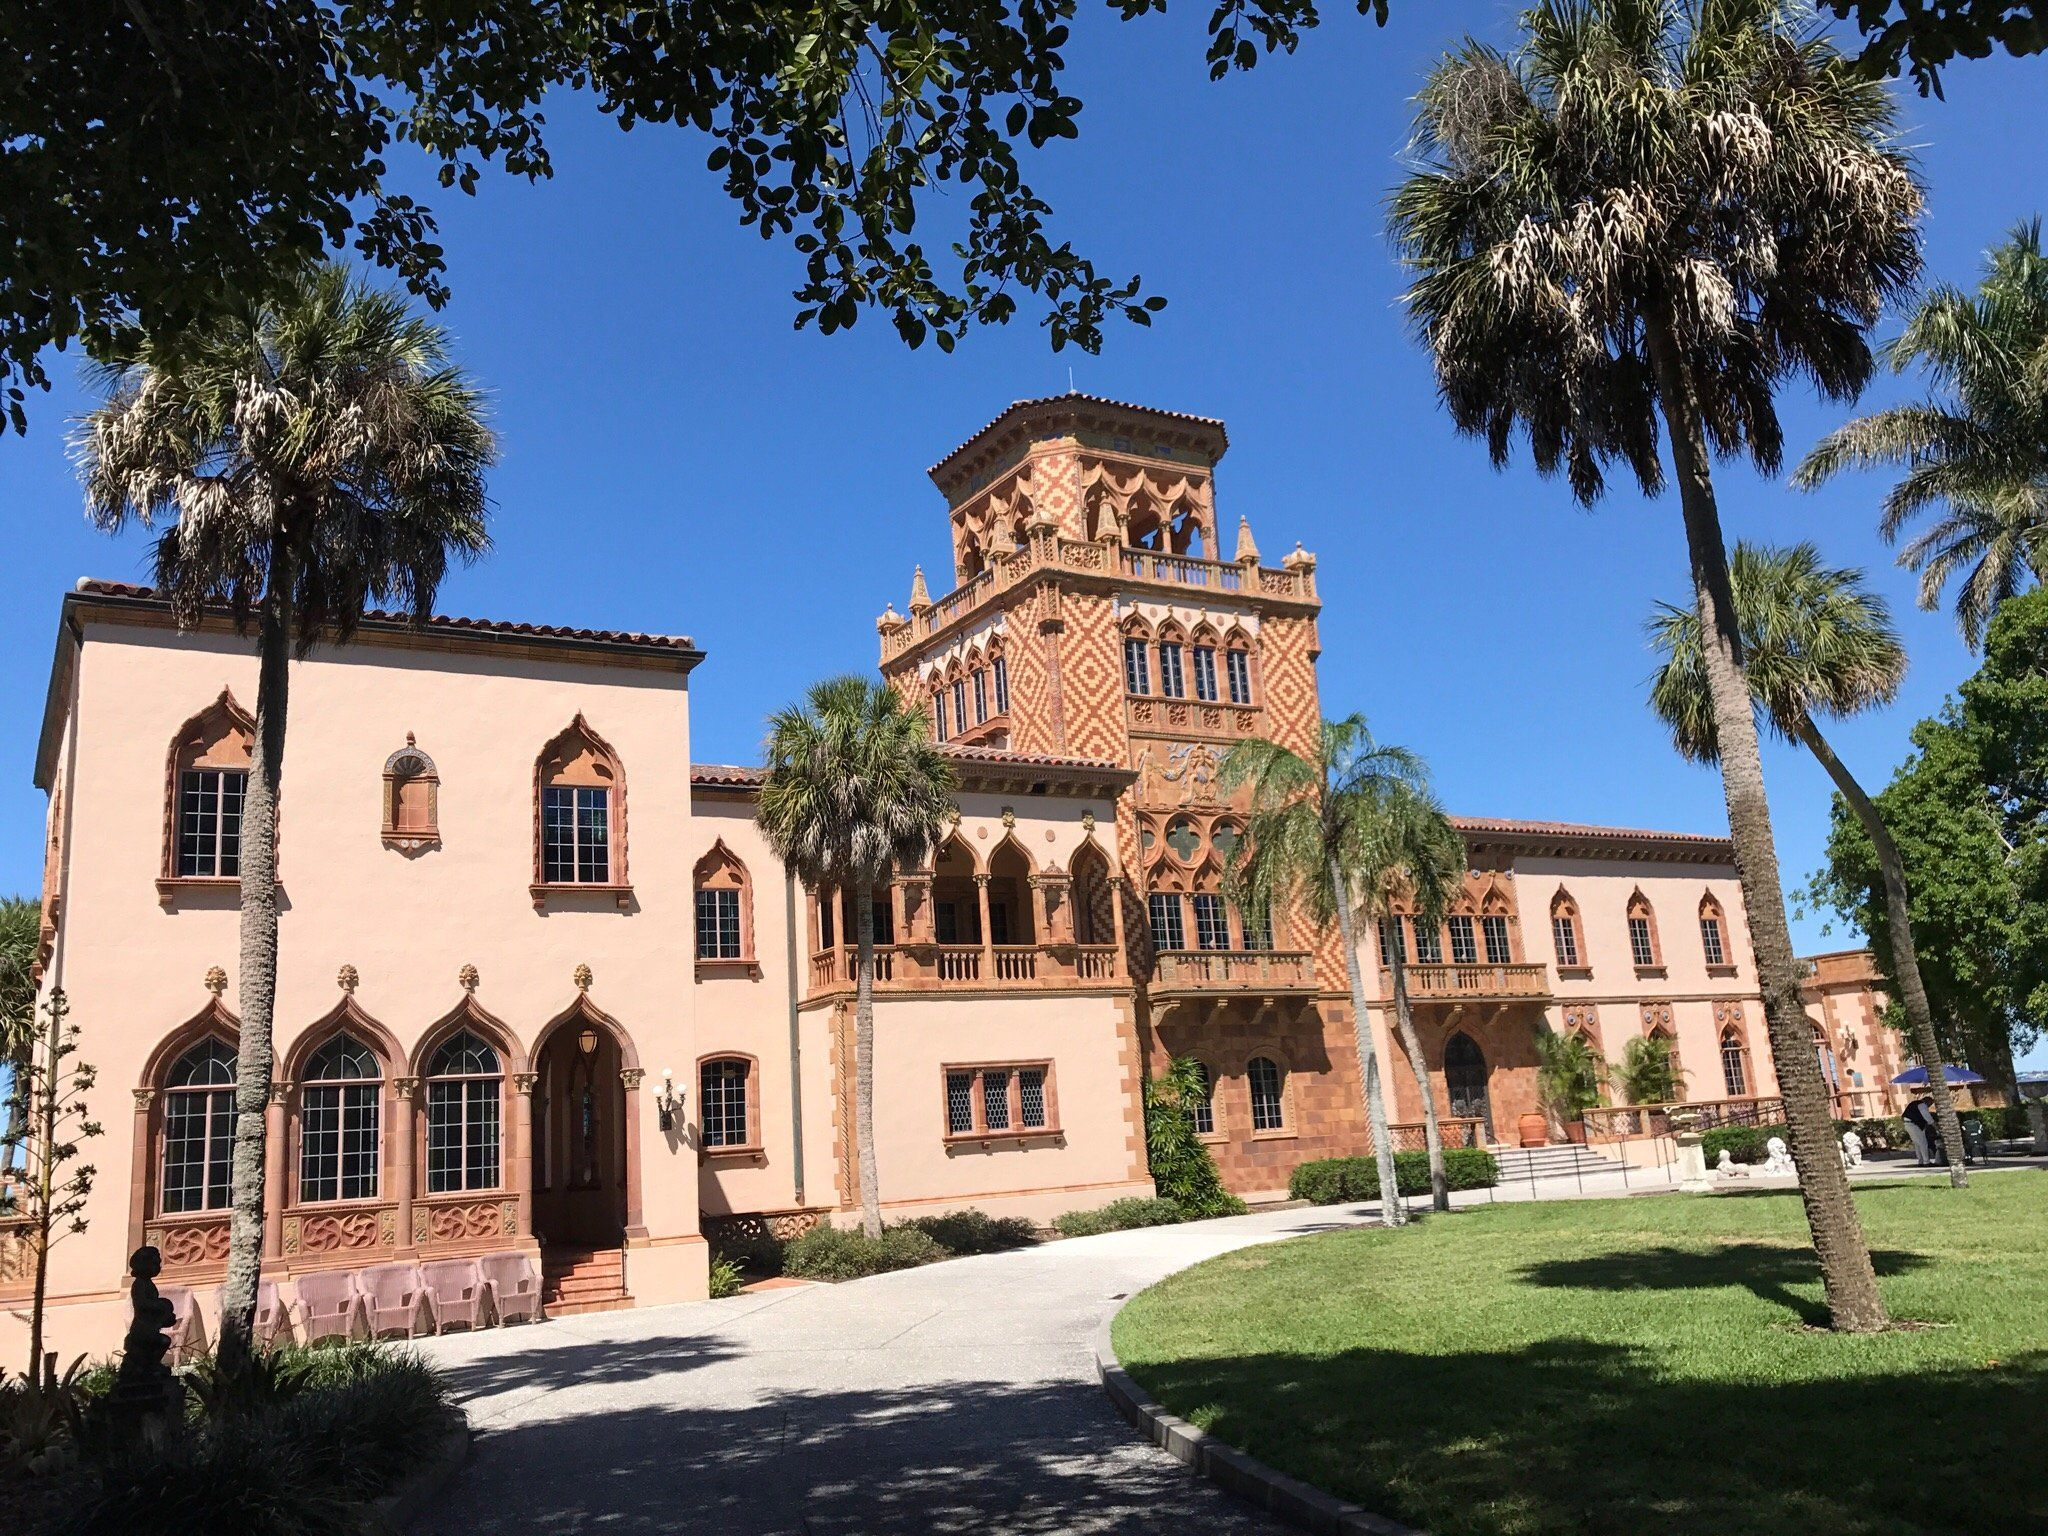 The Magnifcent And Opulent Moorish Syle Mansion Named Ca D Zan Known As The Ringling For John Ringling C 1924 Mansions Sarasota Trip Advisor